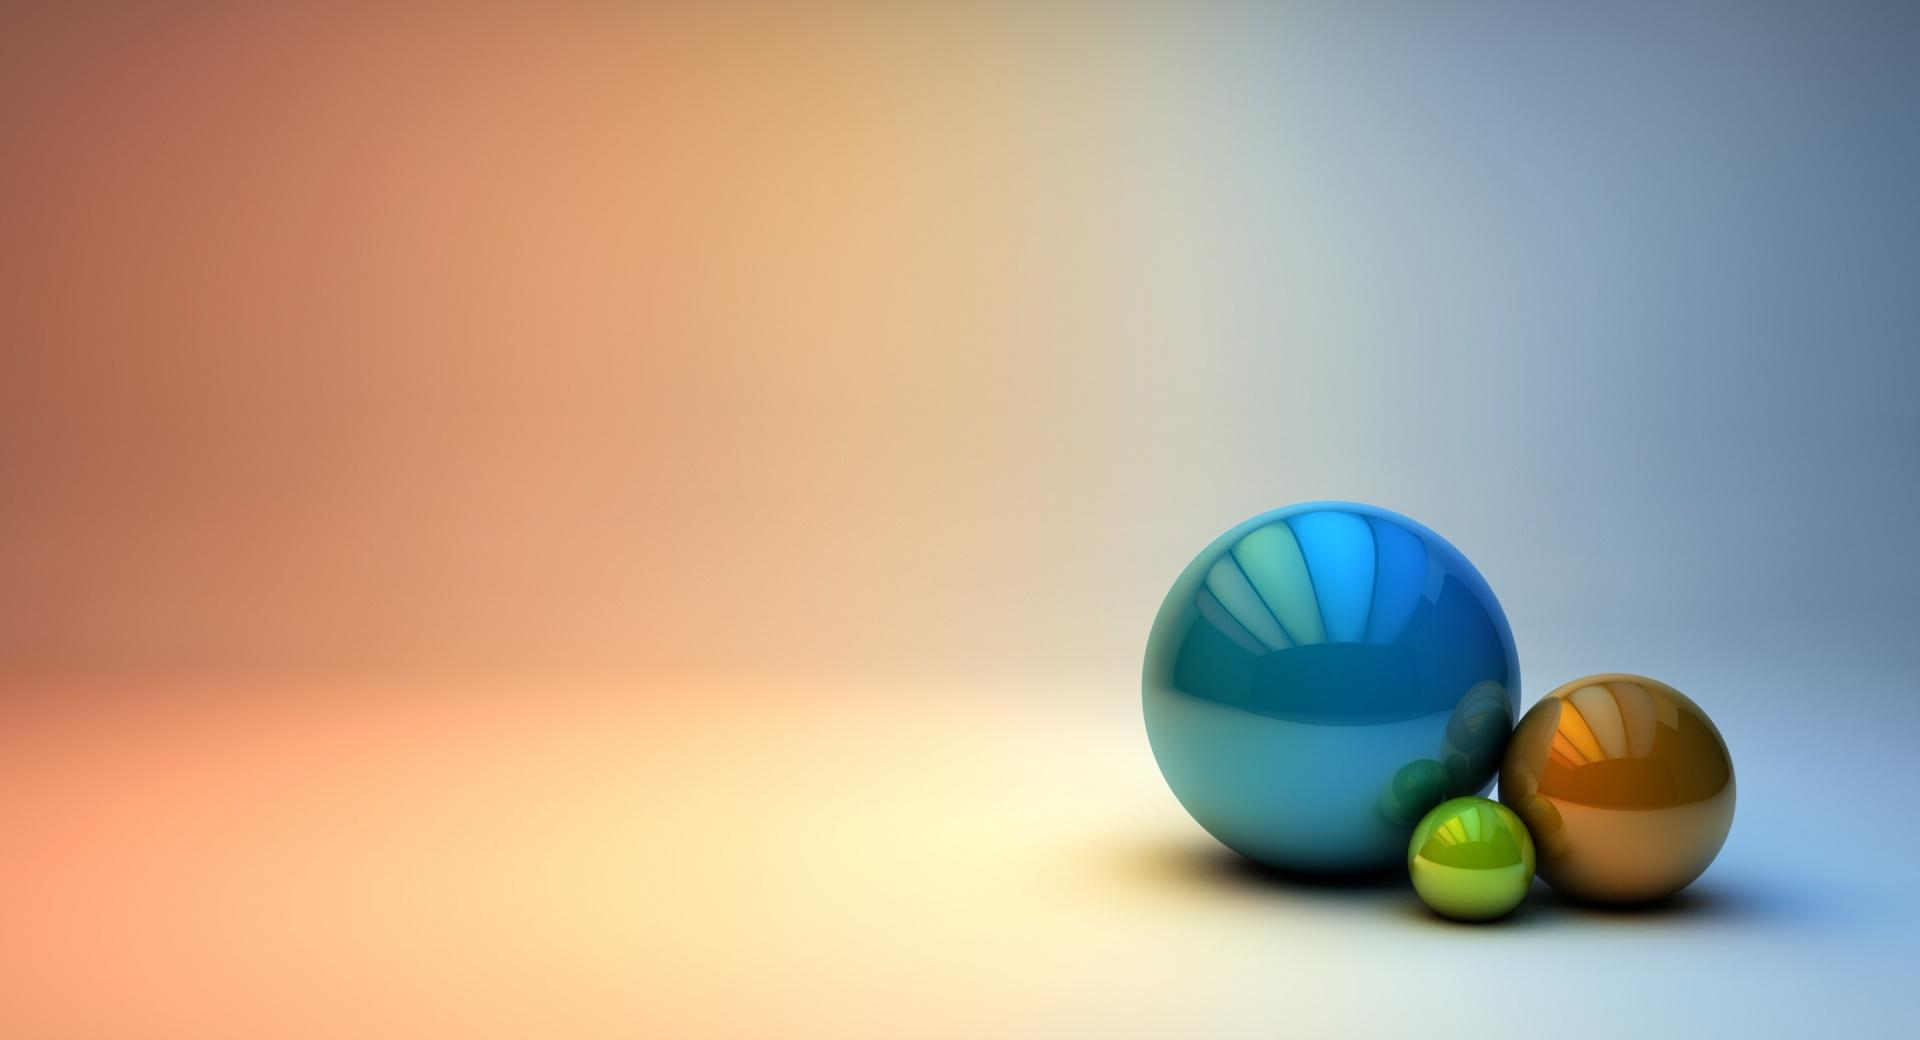 The Three Balls wallpapers HD quality